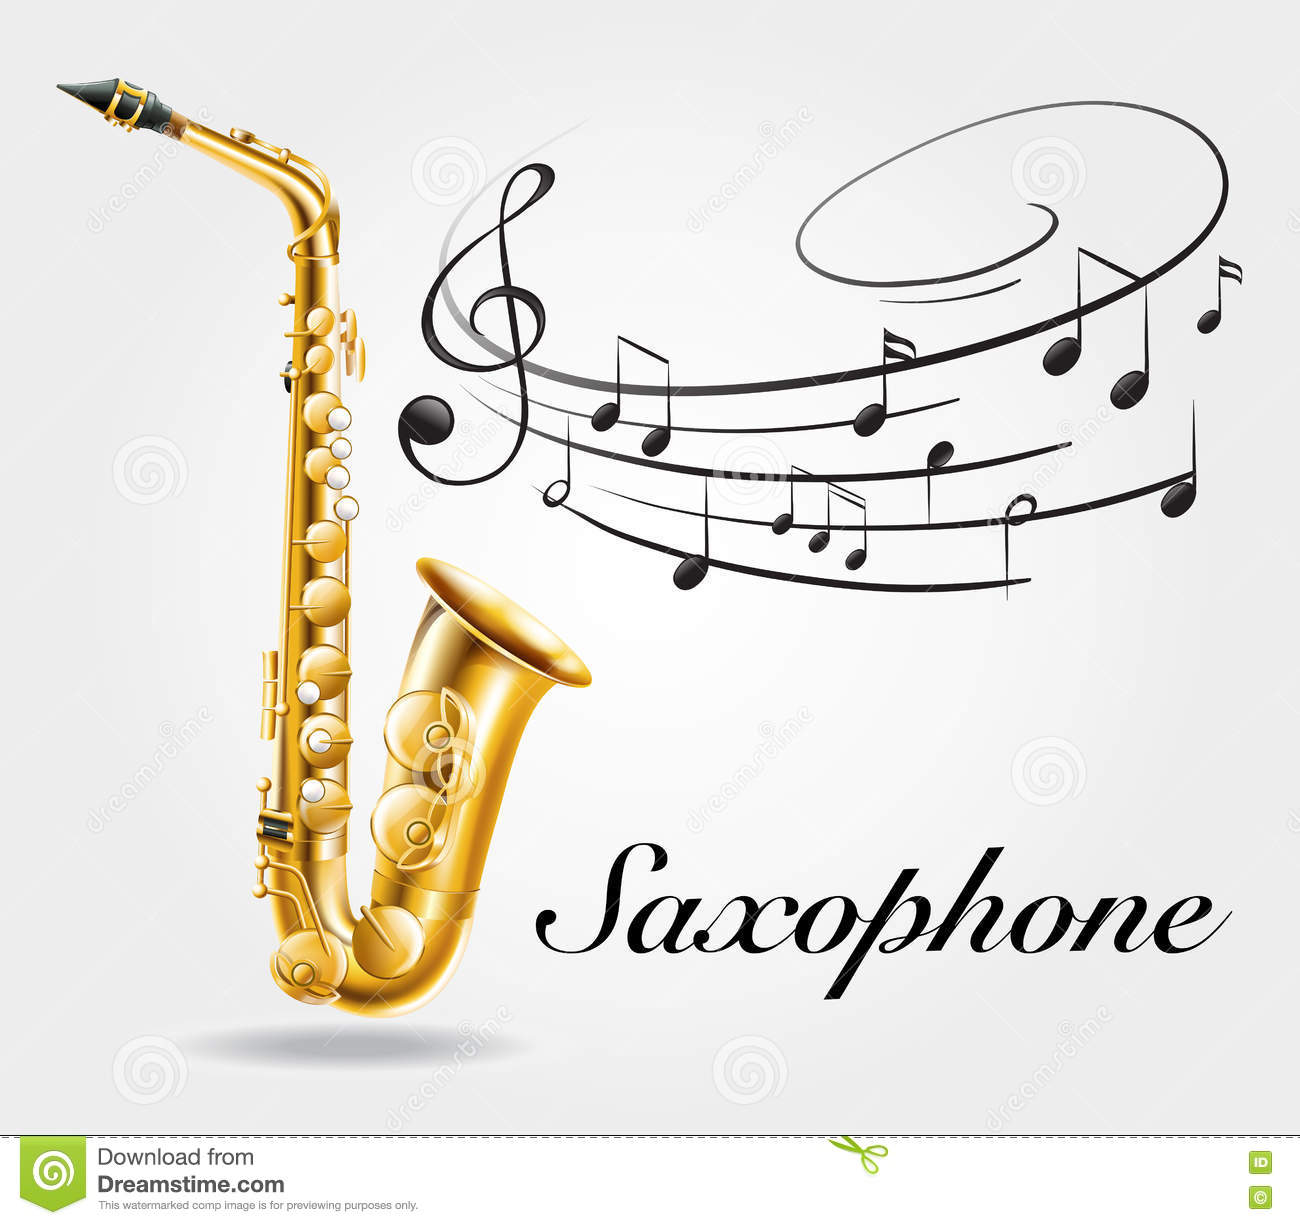 89 sax download